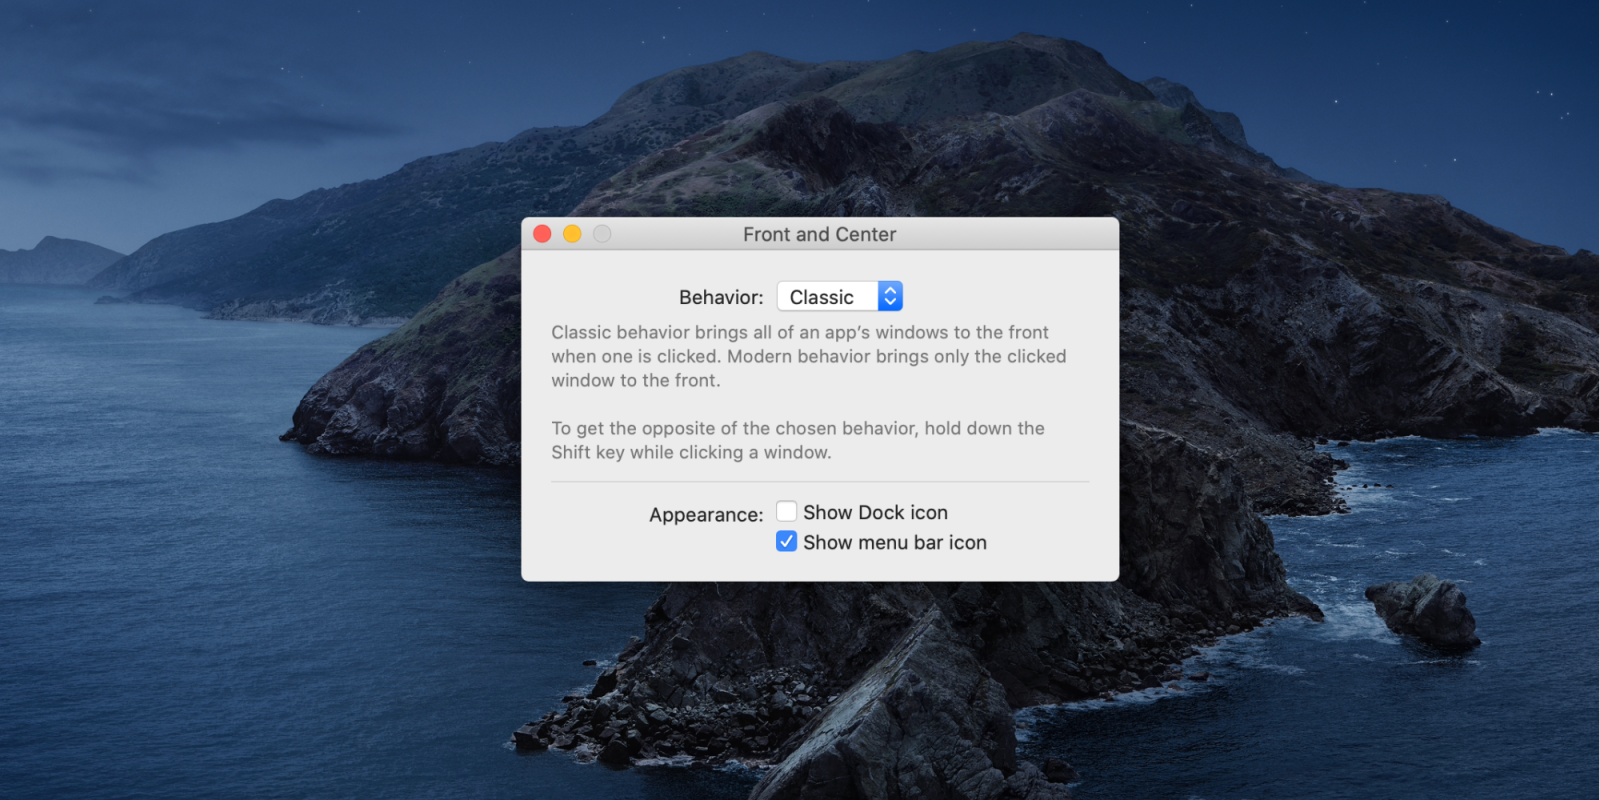 'Front and Center' brings classic Mac window management to macOS Catalina